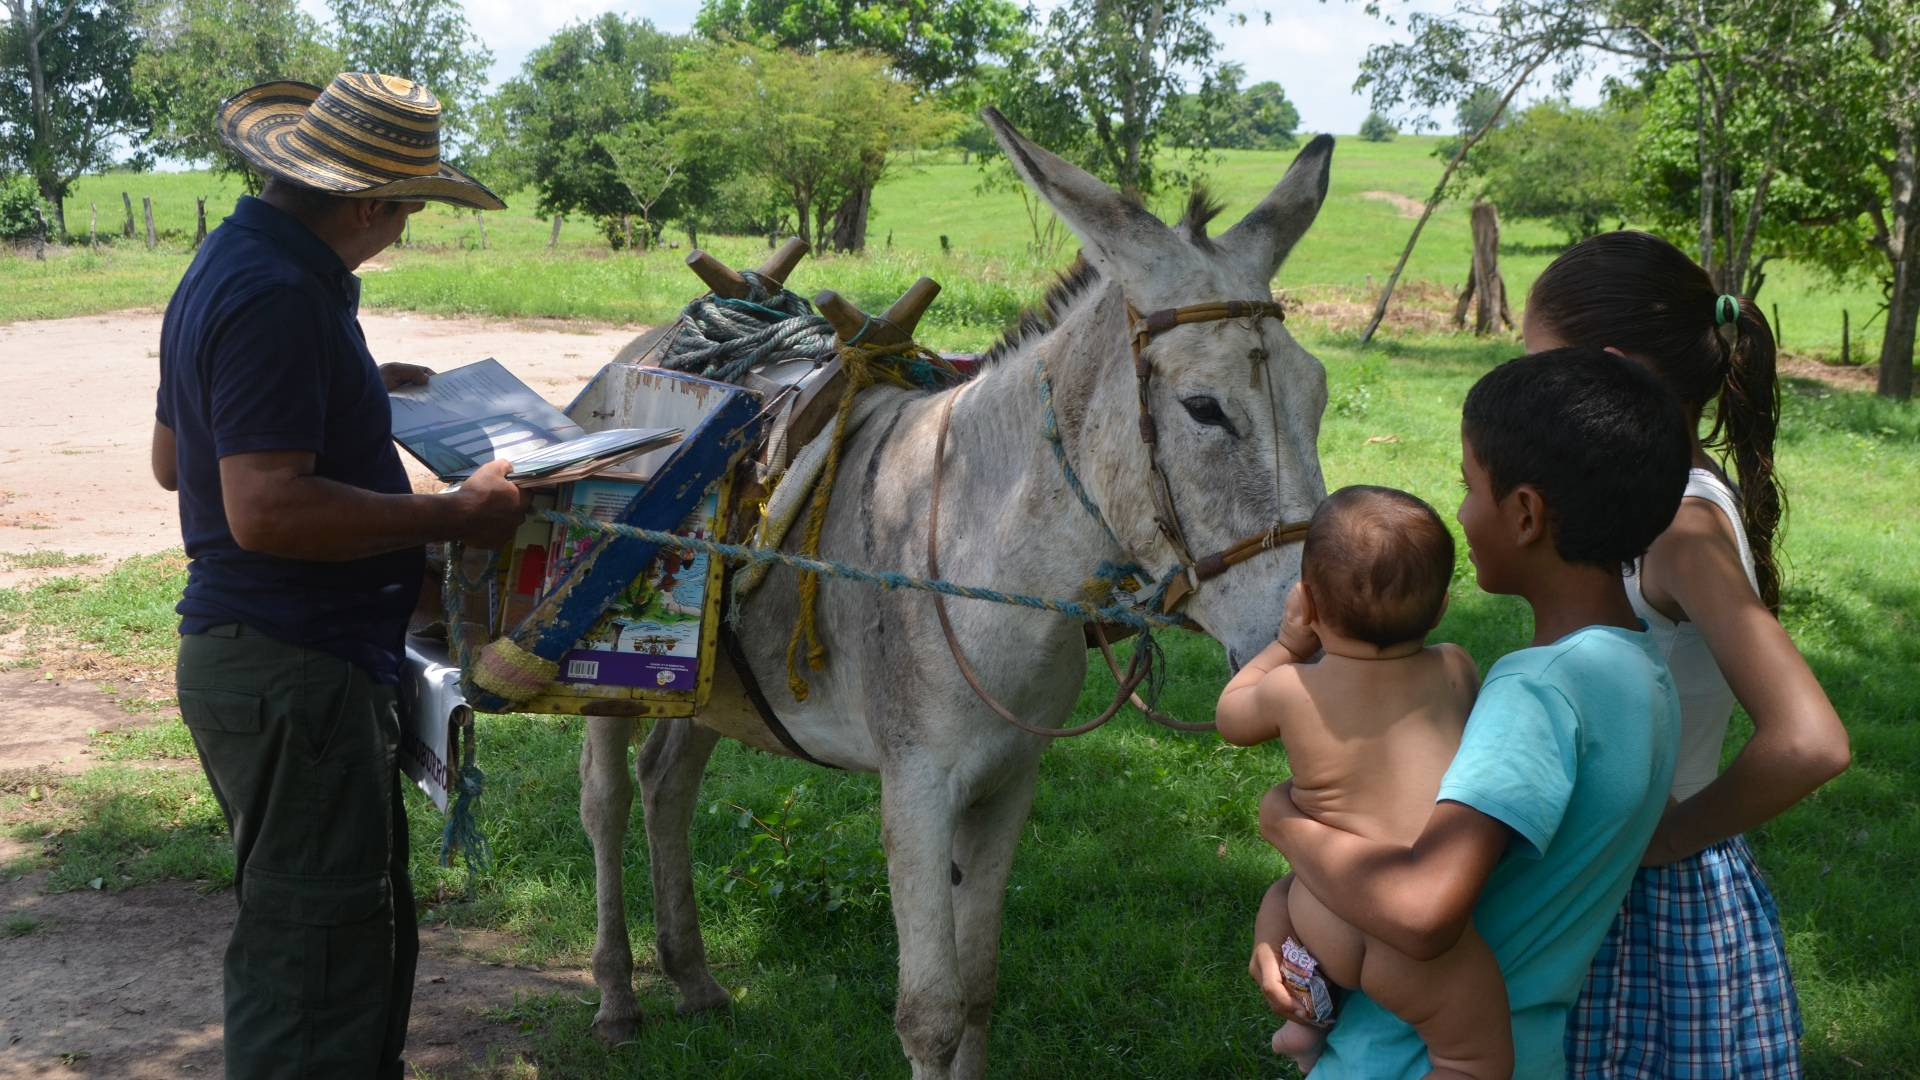 Man reading book in front of burro and three children